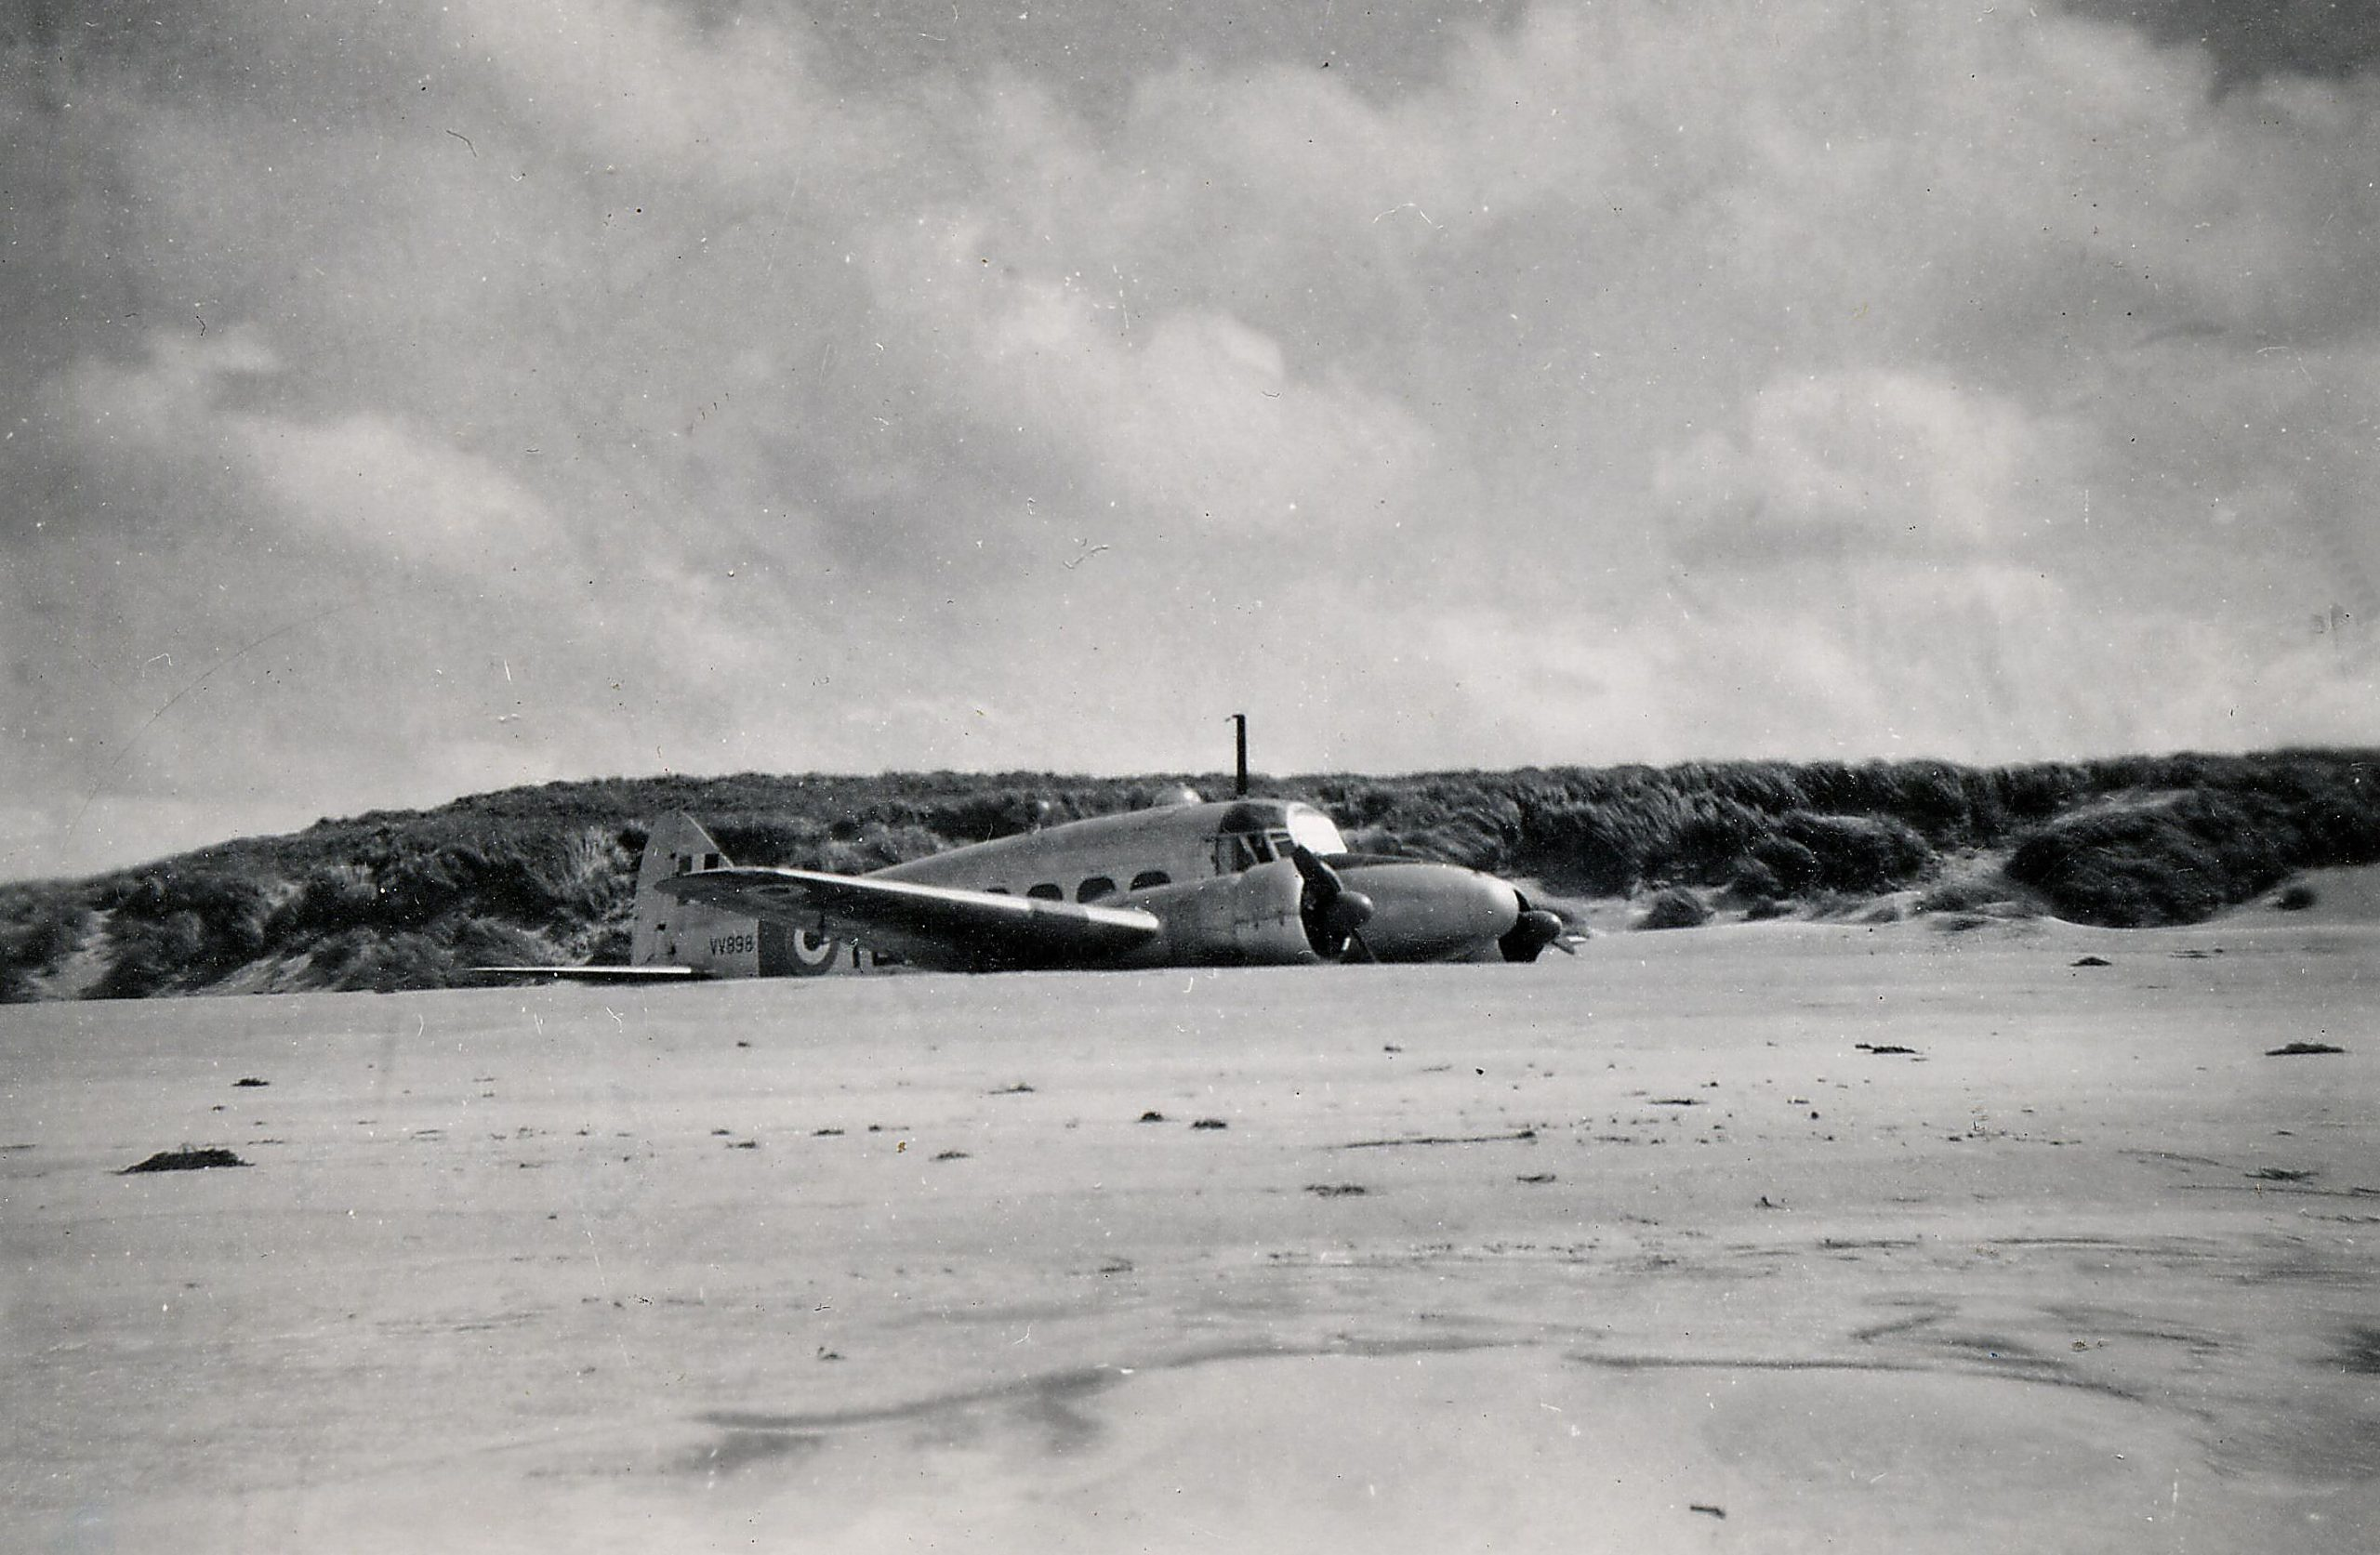 An Avro Anson T20 Trainer lies on the sandy beach at Balnakeil after crash landing in 1952